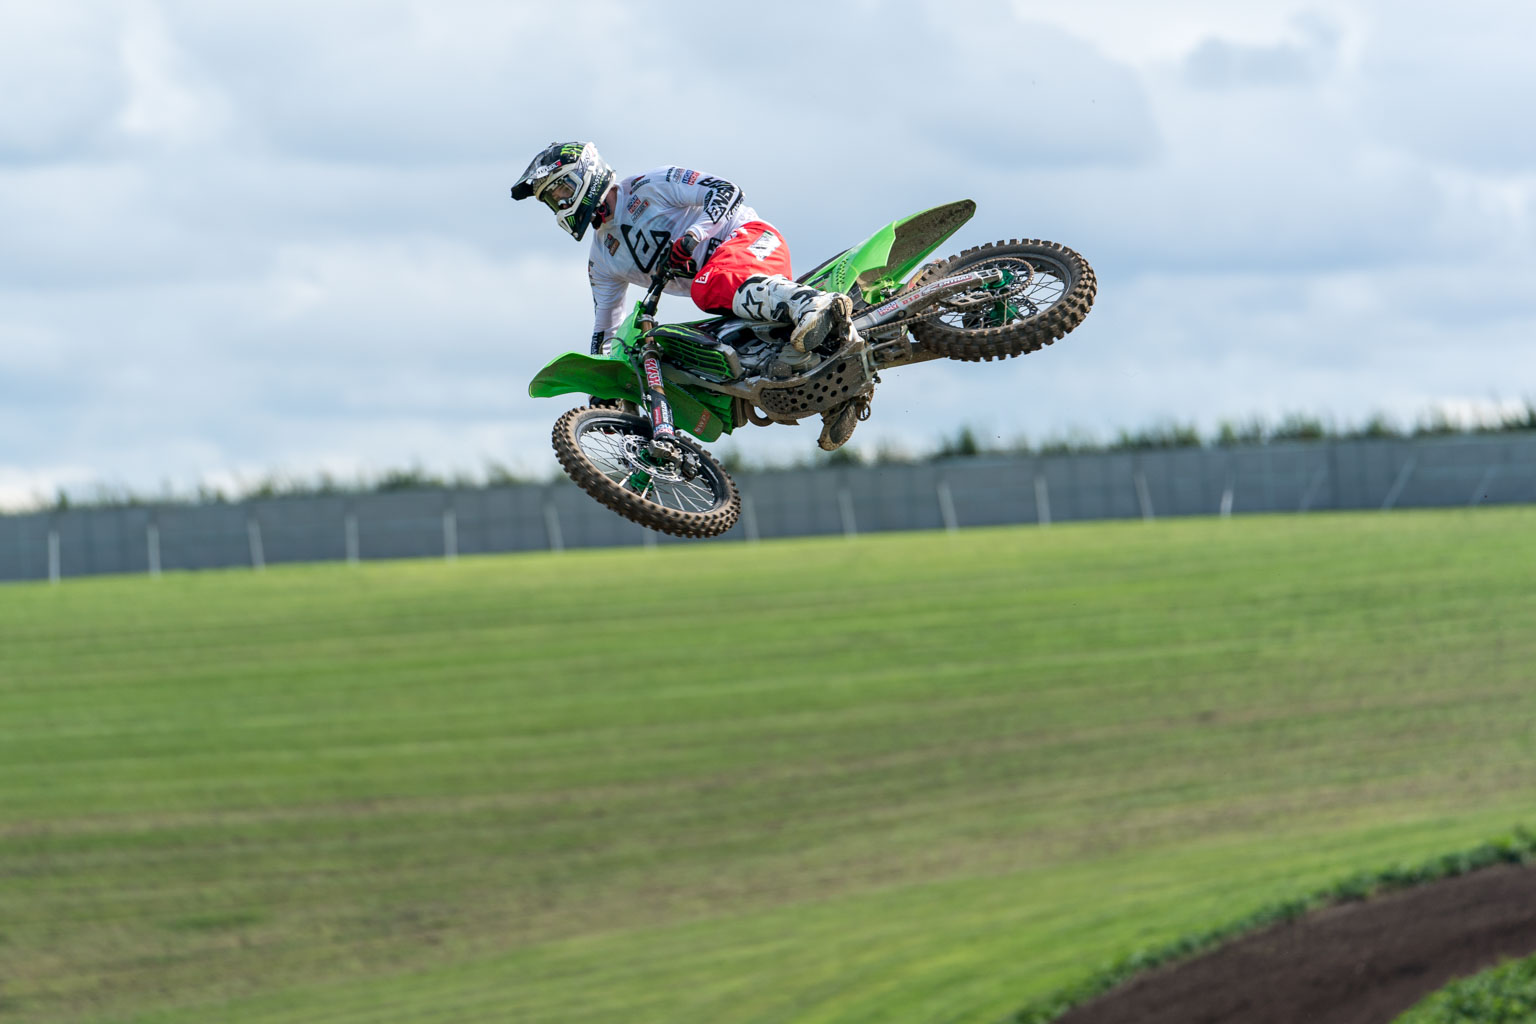 Searle back on the 250 he loves